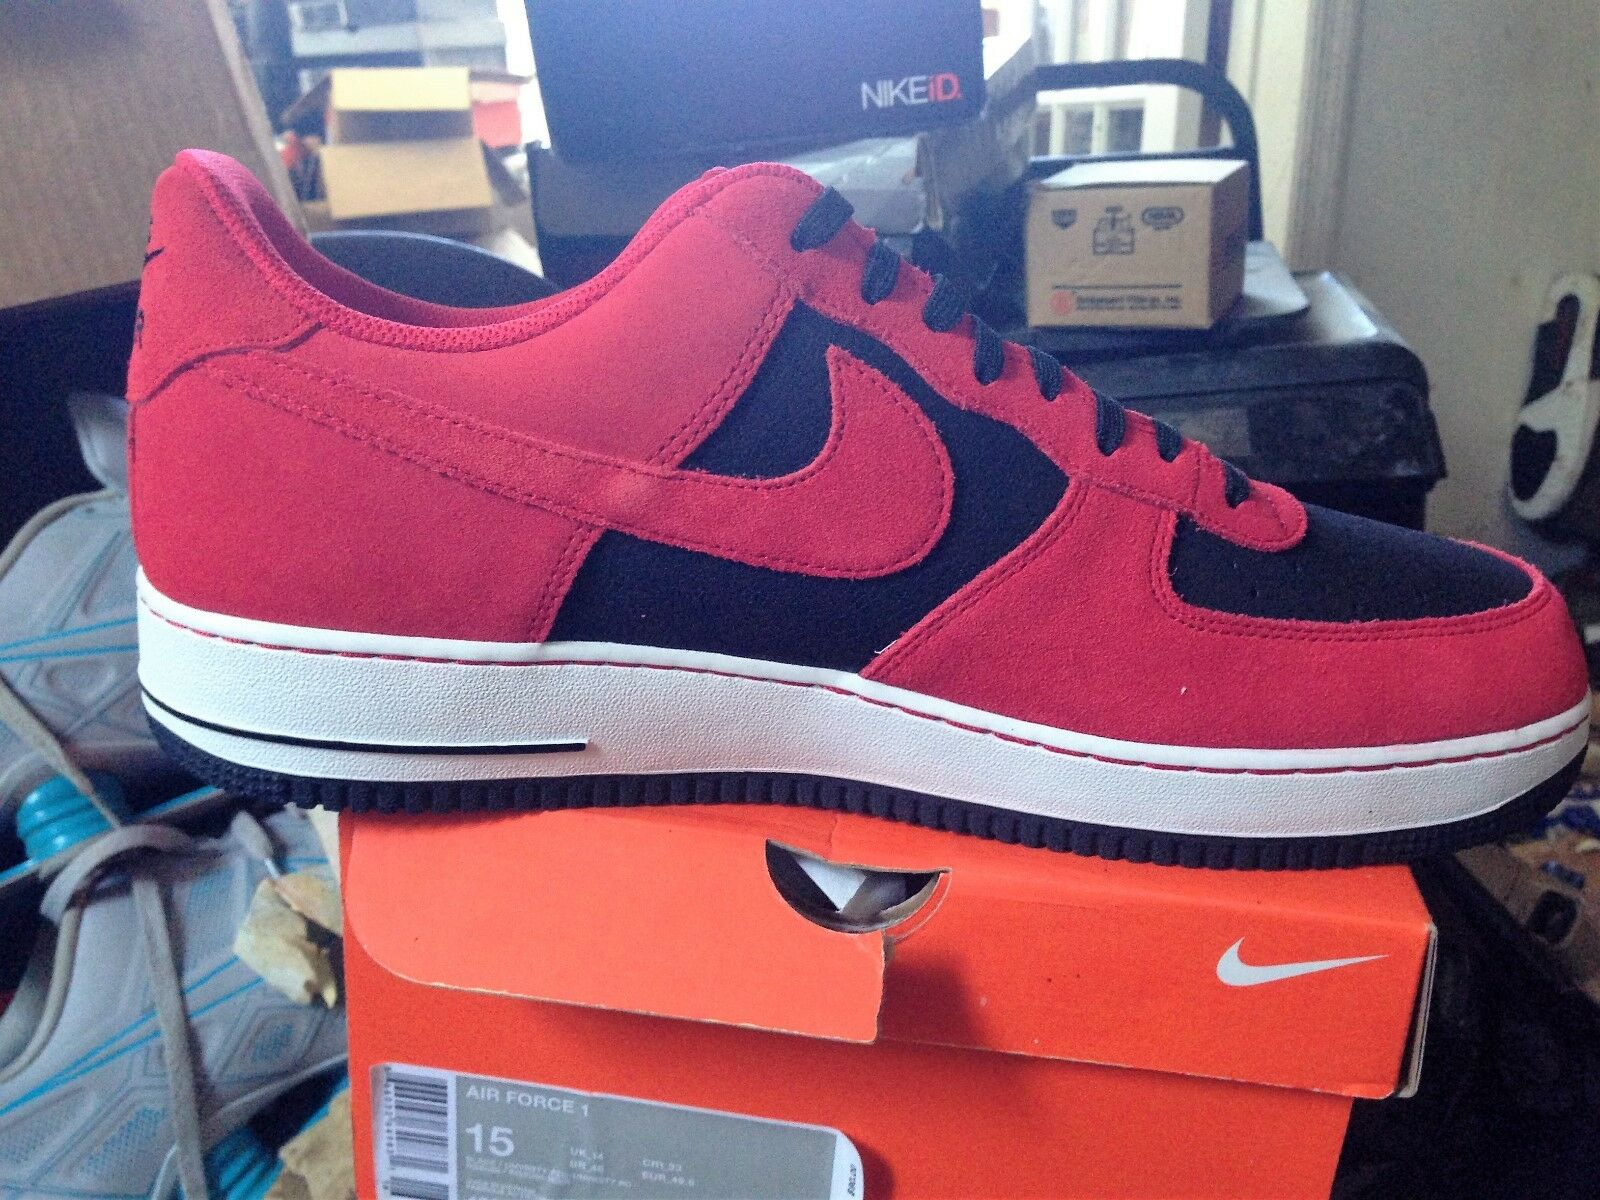 NIKE AIR FORCE 1 RED BLK WHITE BNIB SIZE 15 DEADSTOCK